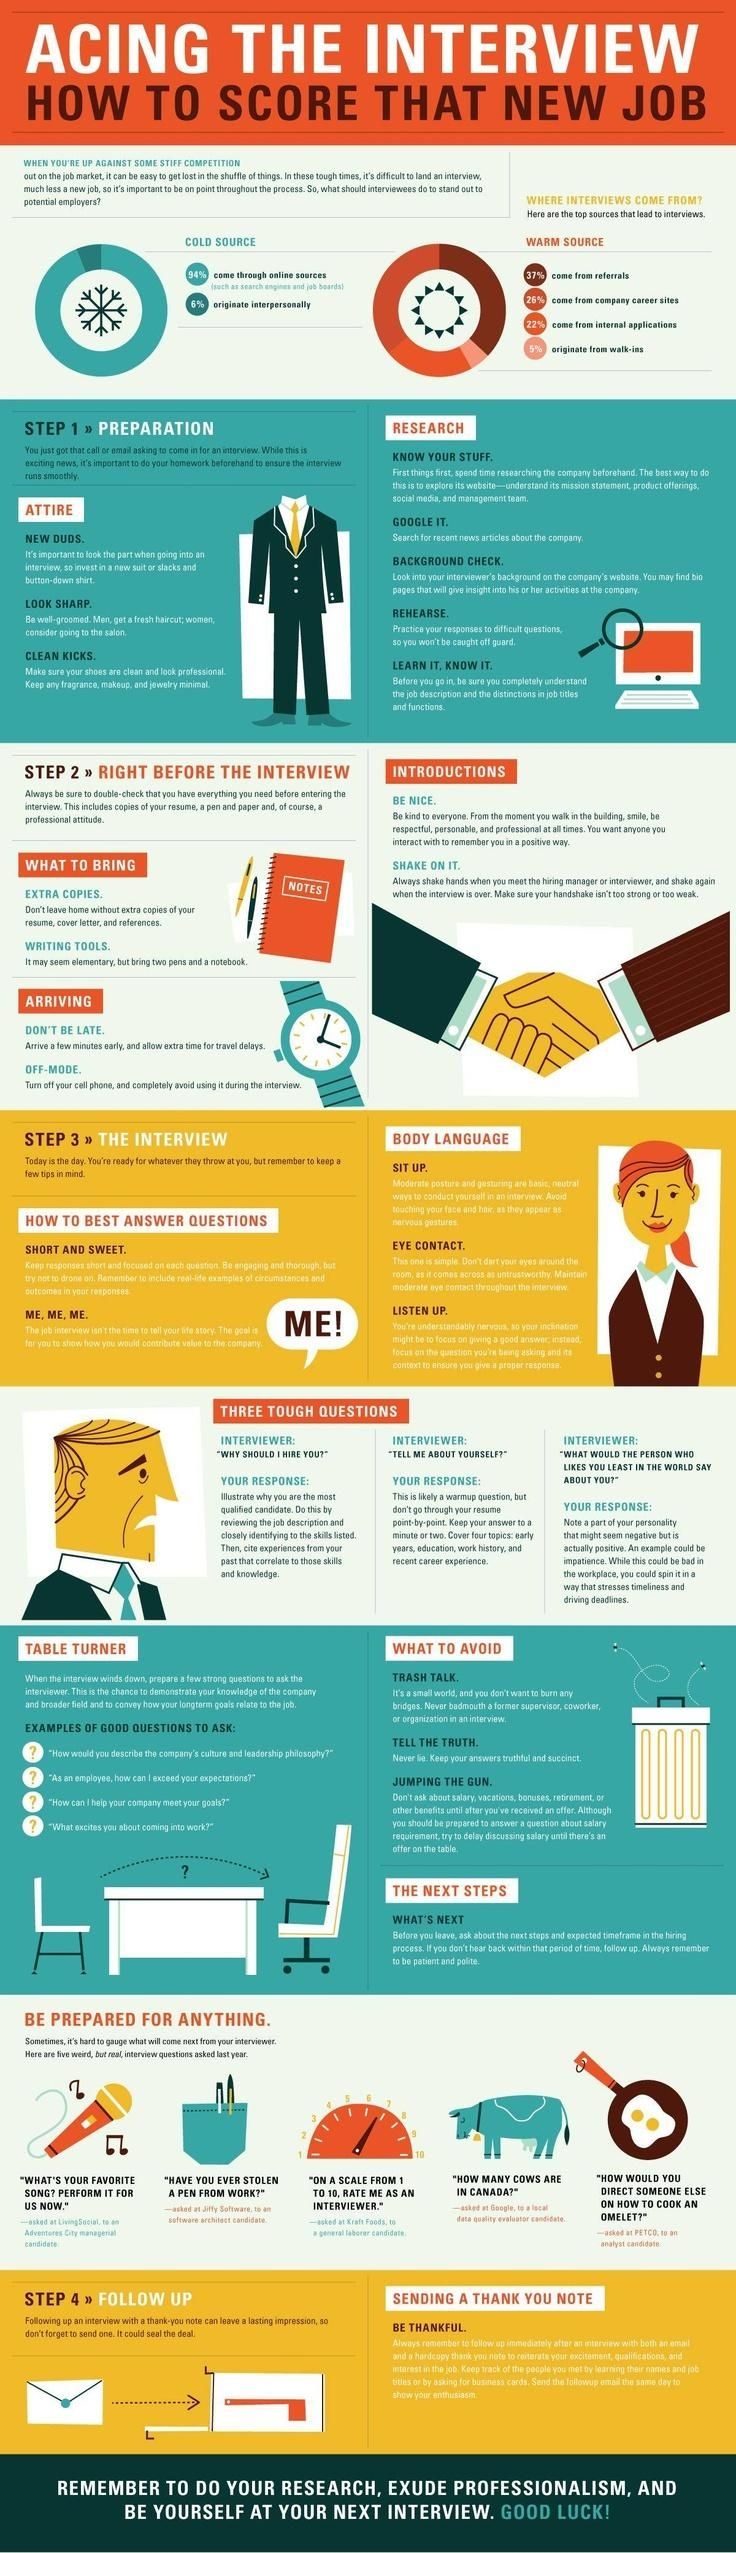 17 best images about interview prep tips acing that interview for a great new job